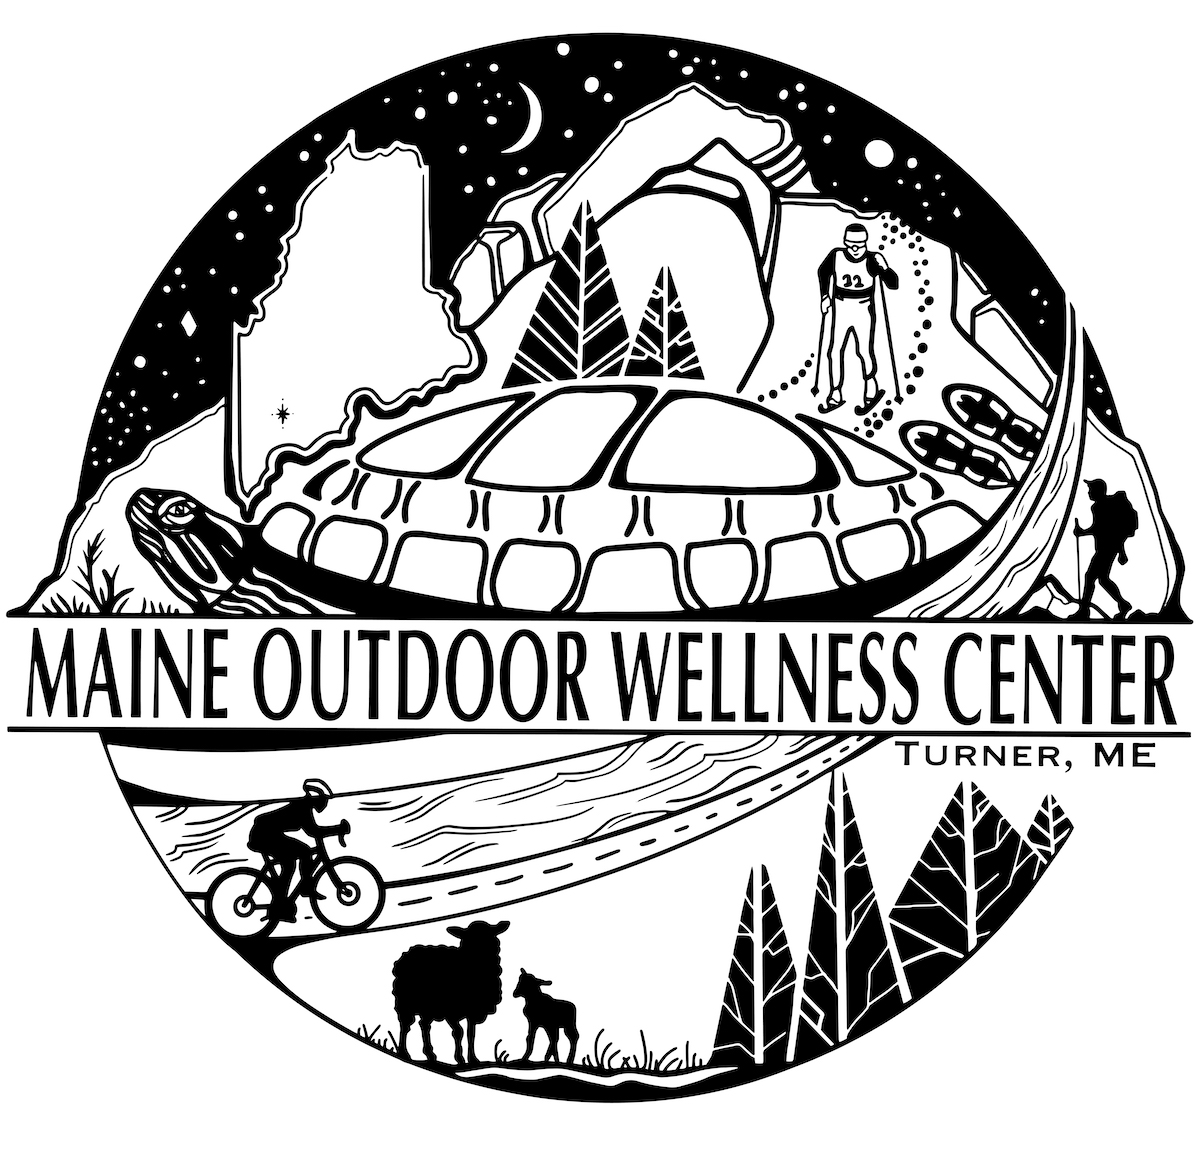 The Maine Outdoor Wellness Center